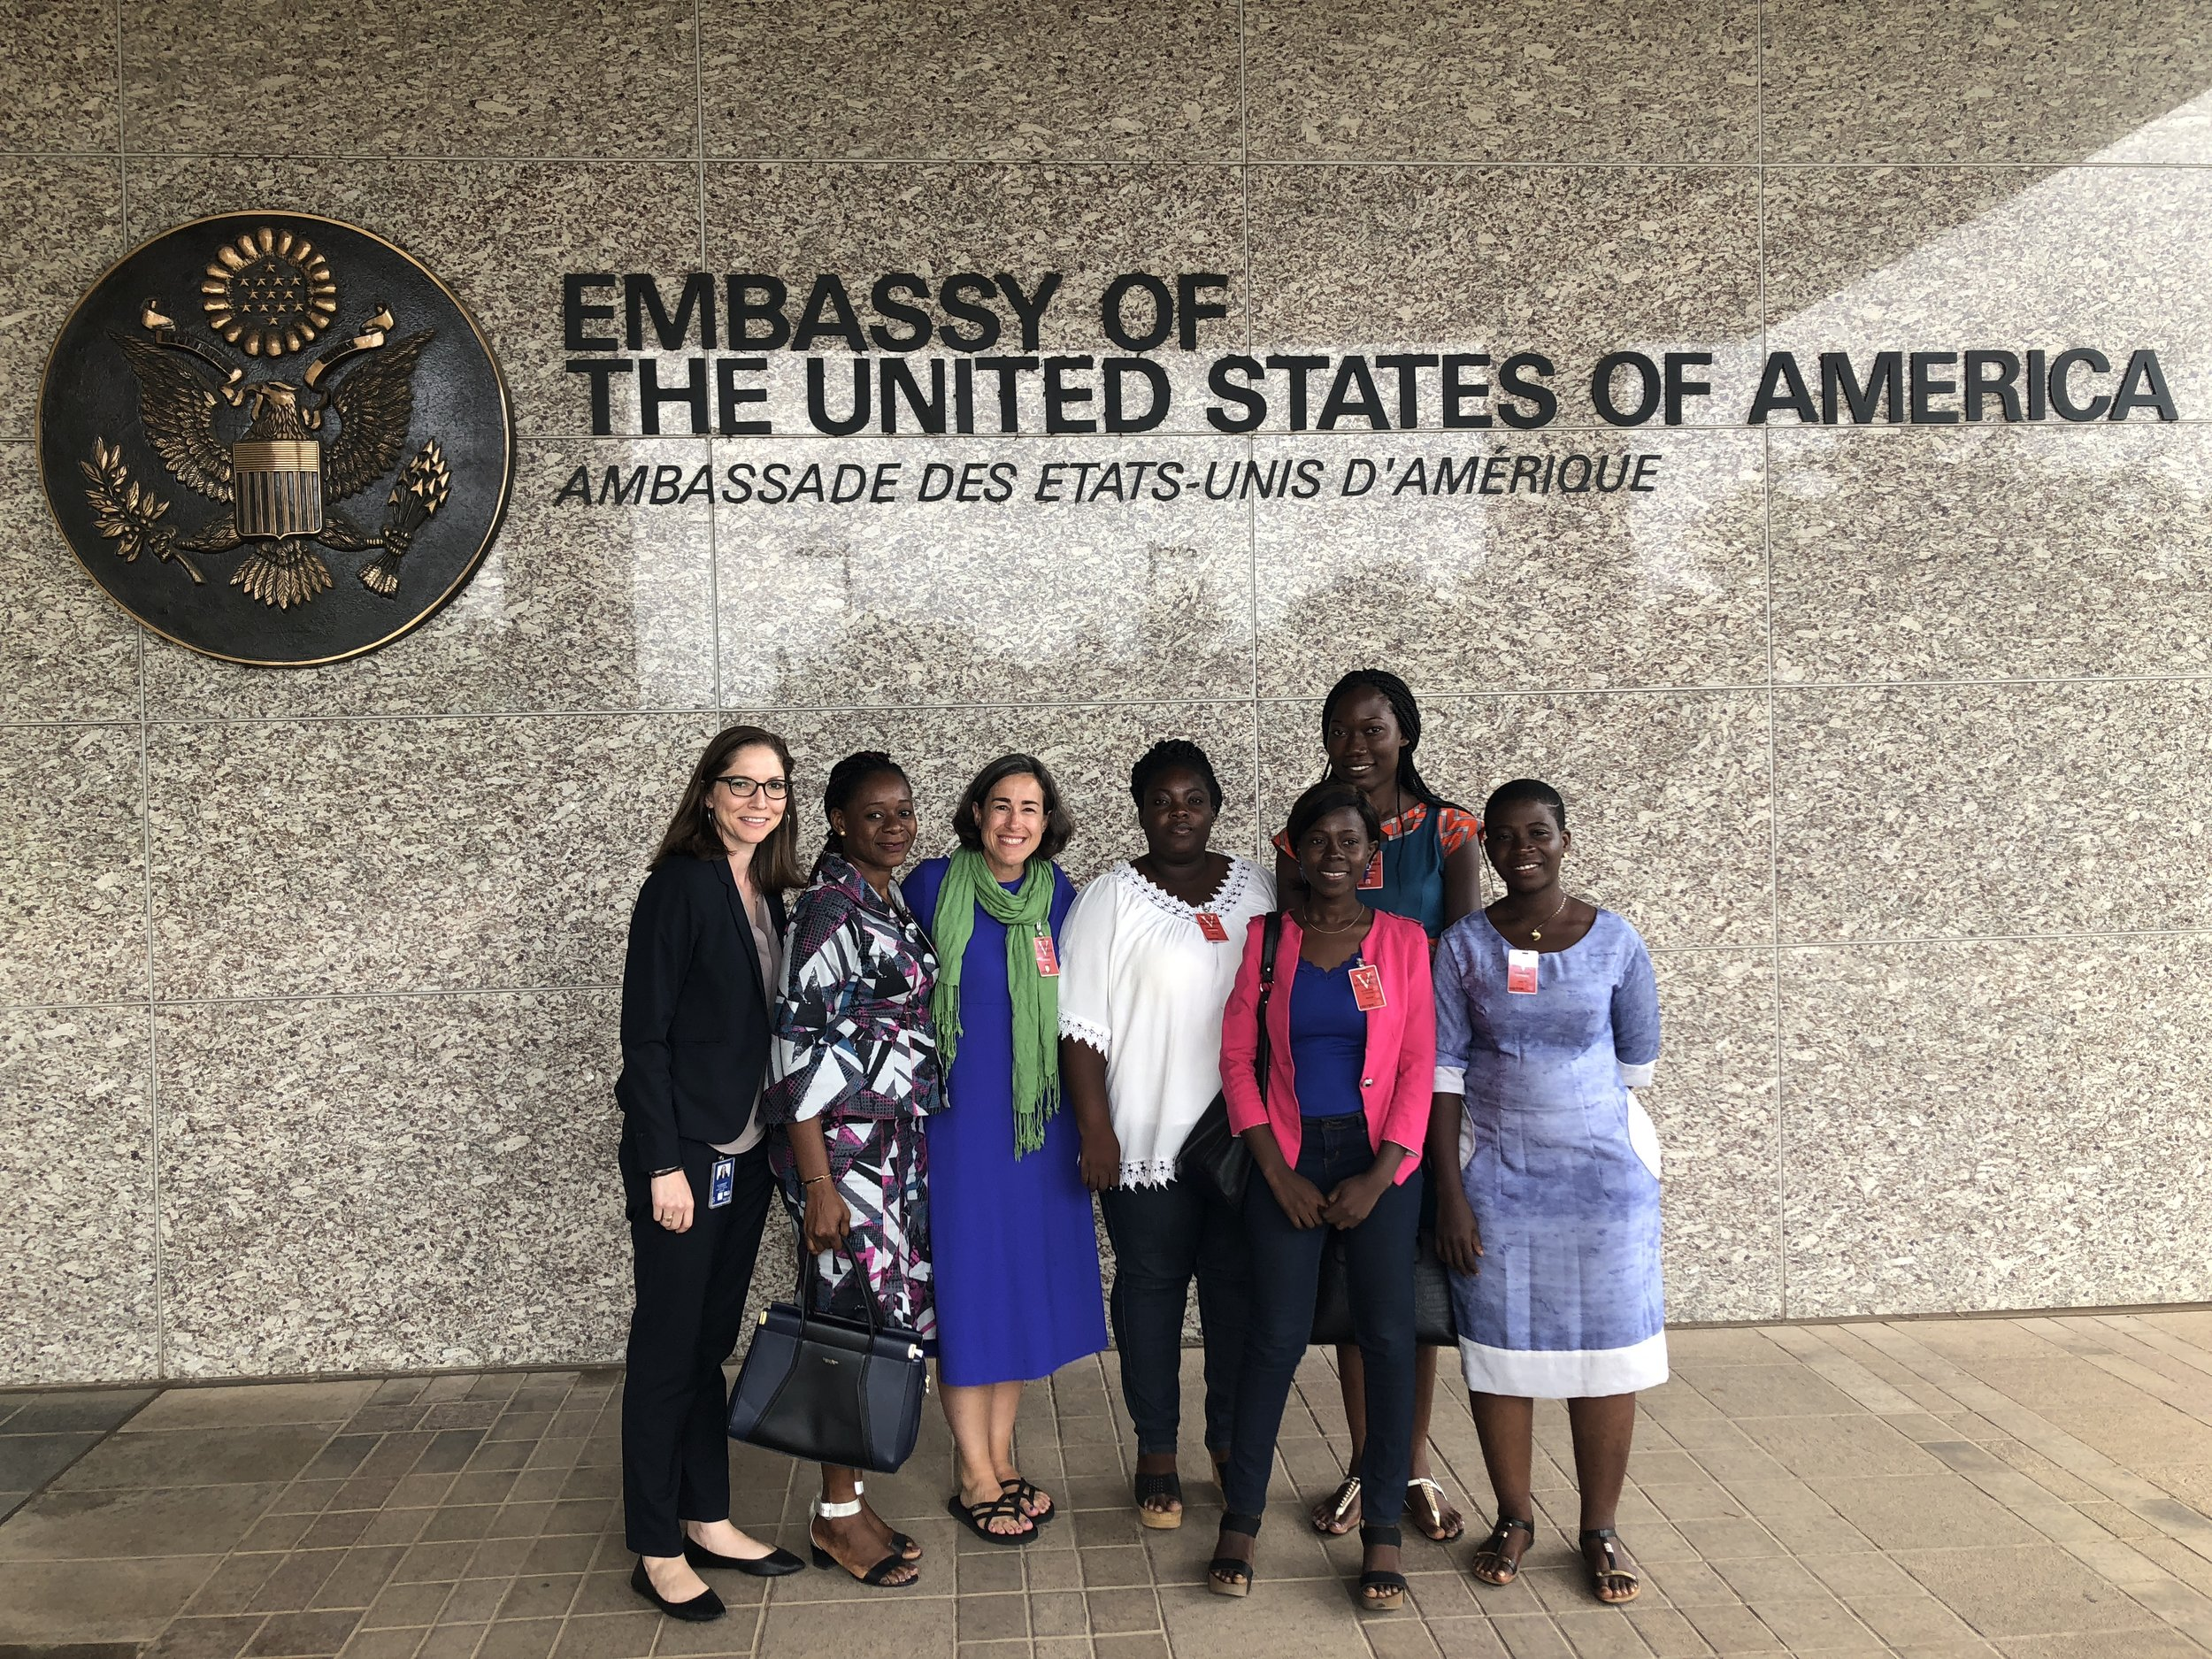 Five of Cotonou's journalists explained to two Americans what it's like to do their work in Benin, but still had energy to smile afterward.